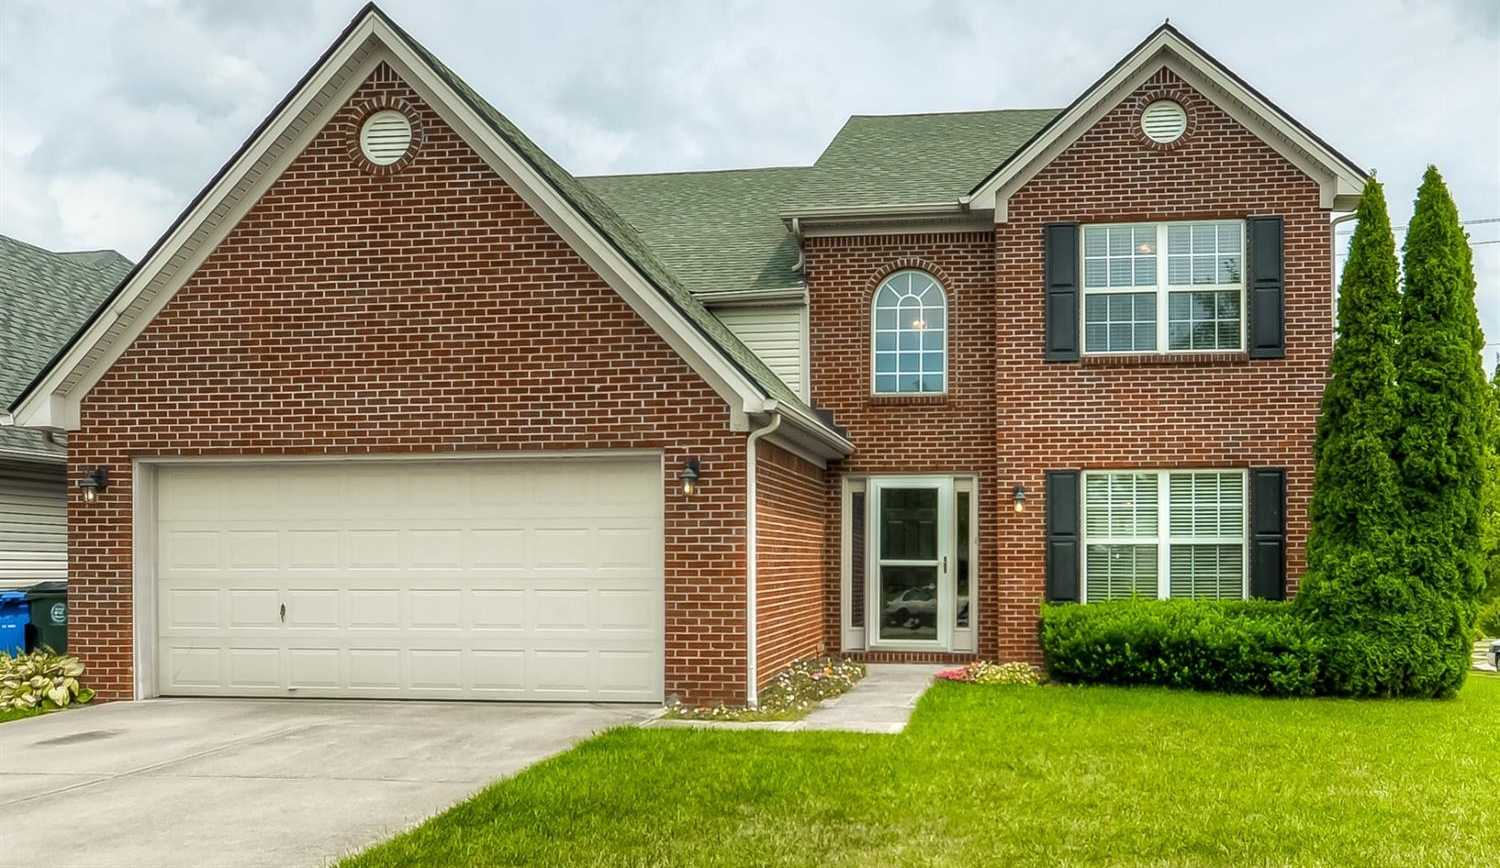 $248,500 - 4Br/3Ba -  for Sale in Willow Bend, Lexington